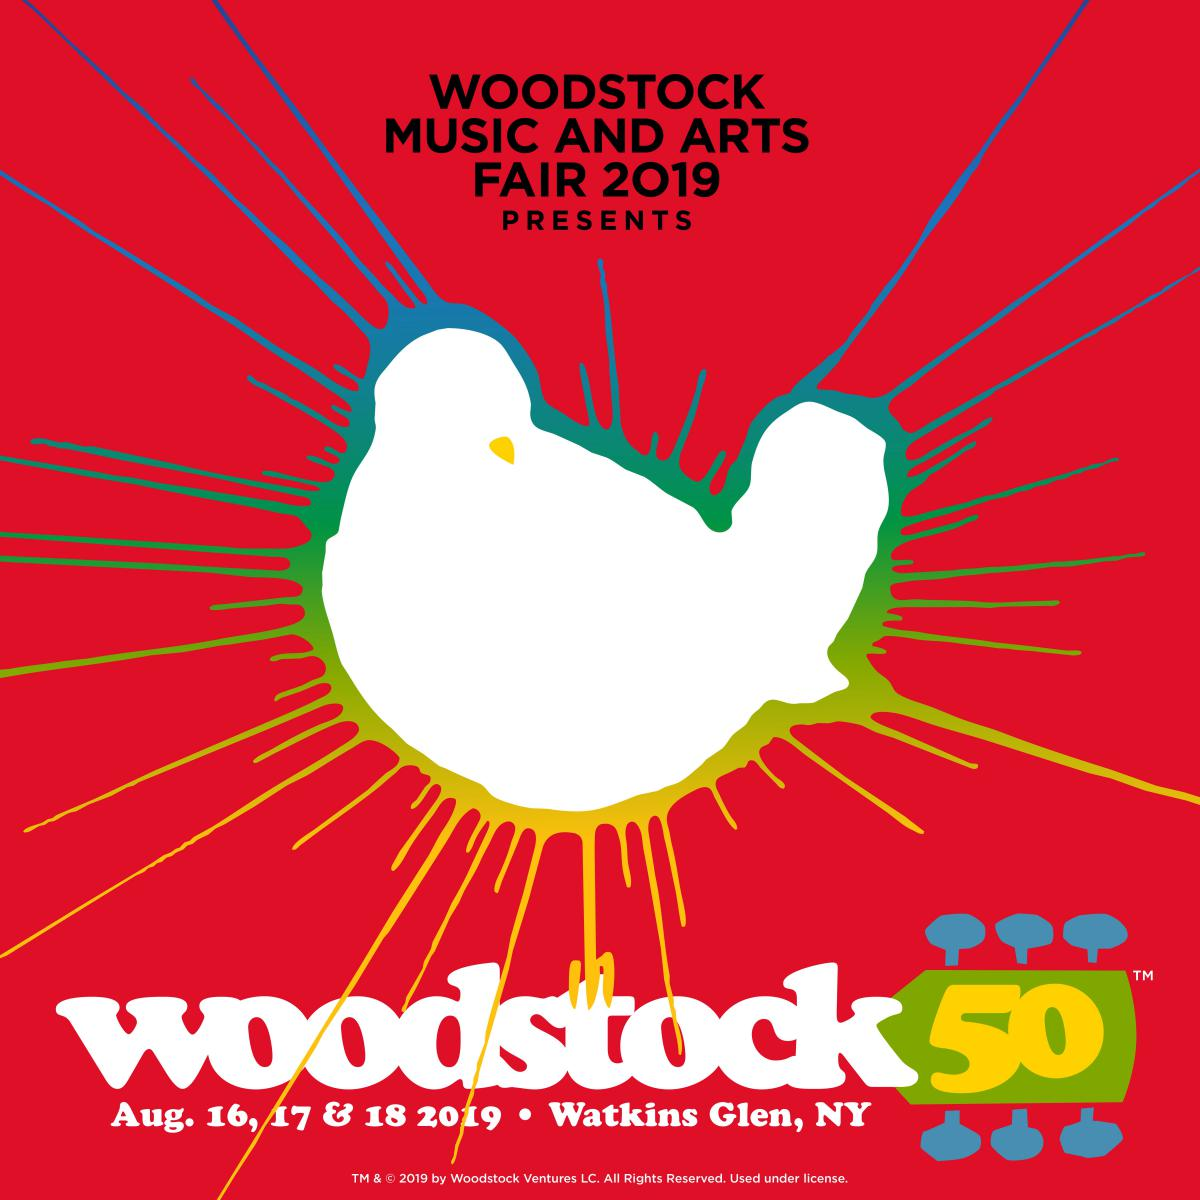 Original Woodstock promoter Michael Lang has announced that the official 50th anniversary concert will be held in Central New York Lang announced